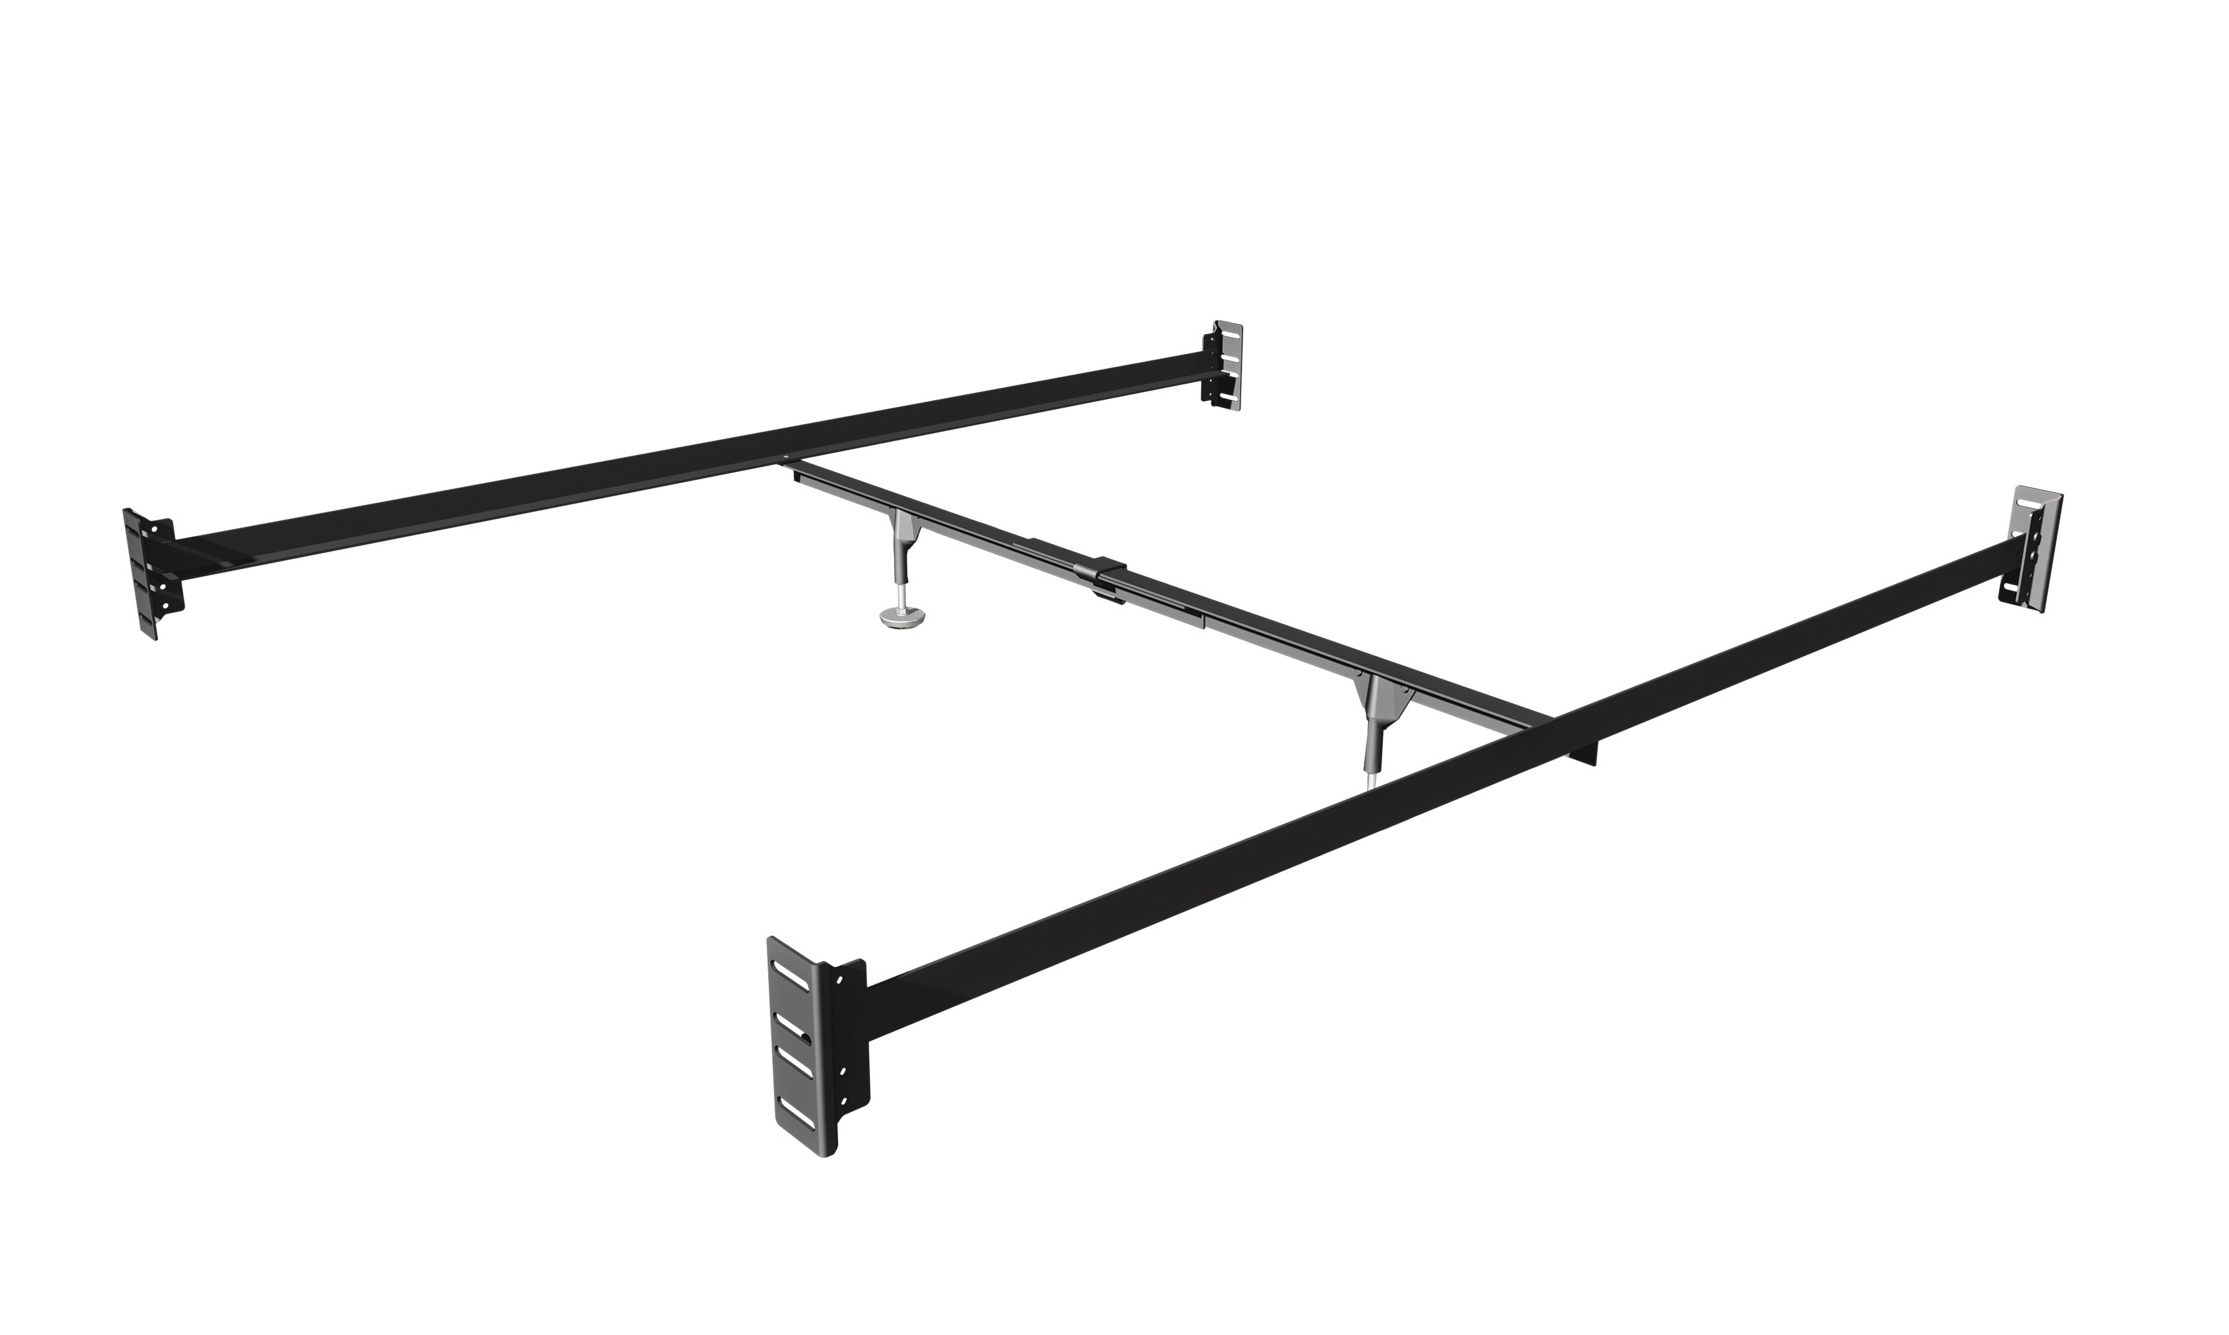 Mantua 584XR Bolt-On Bed Rails for Queen Beds